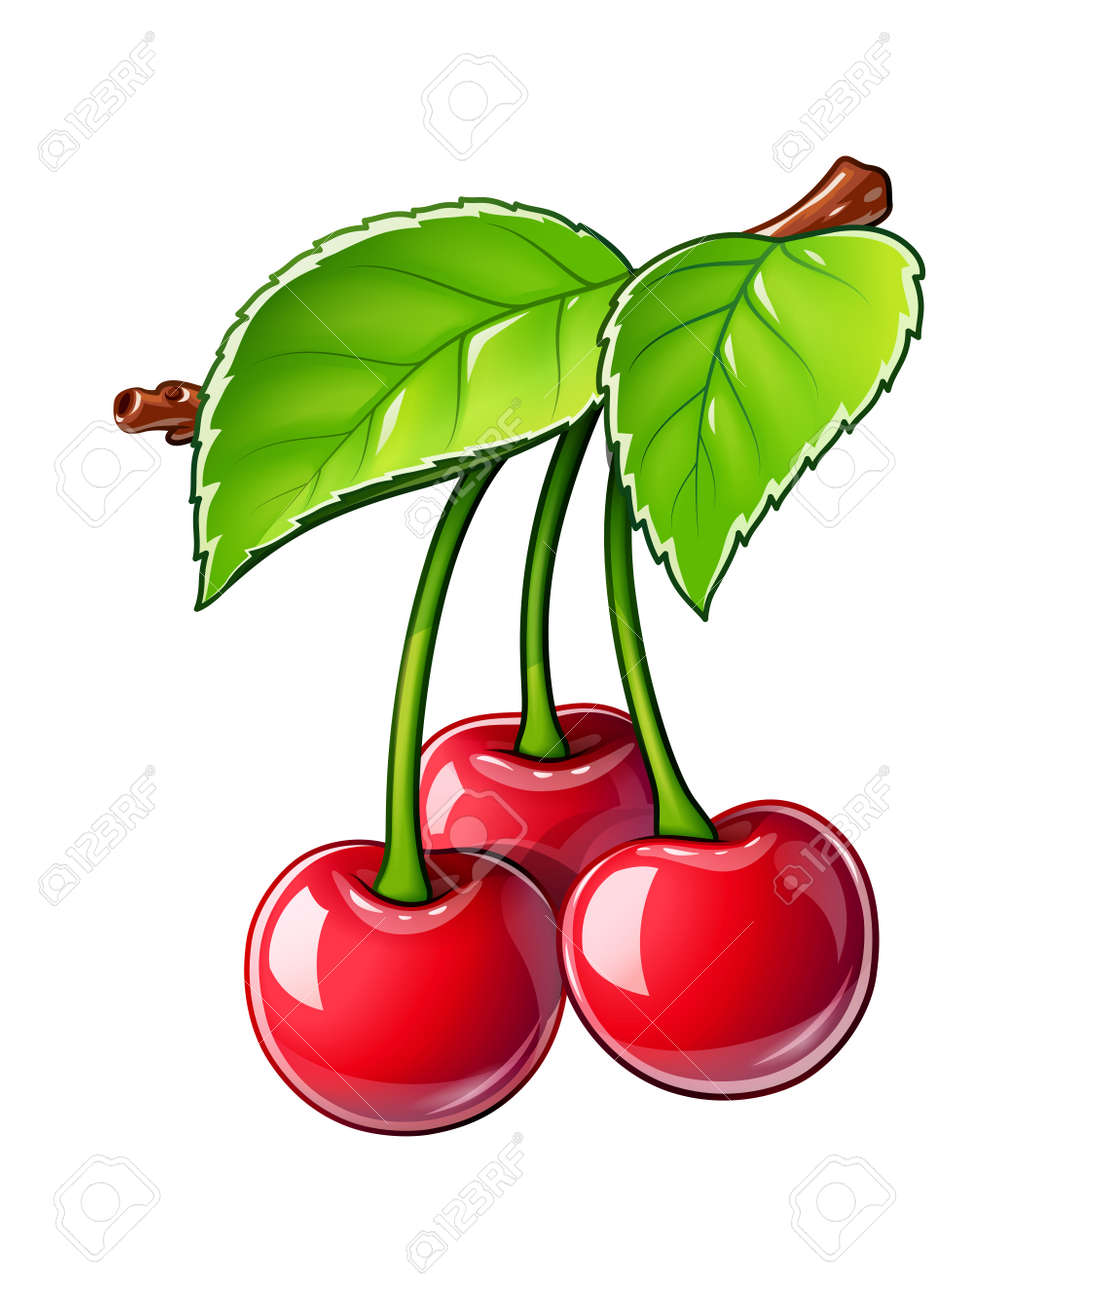 Cherry. Ripe juicy berry. Red fruit with leaf, Isolated on white background. - 168582645